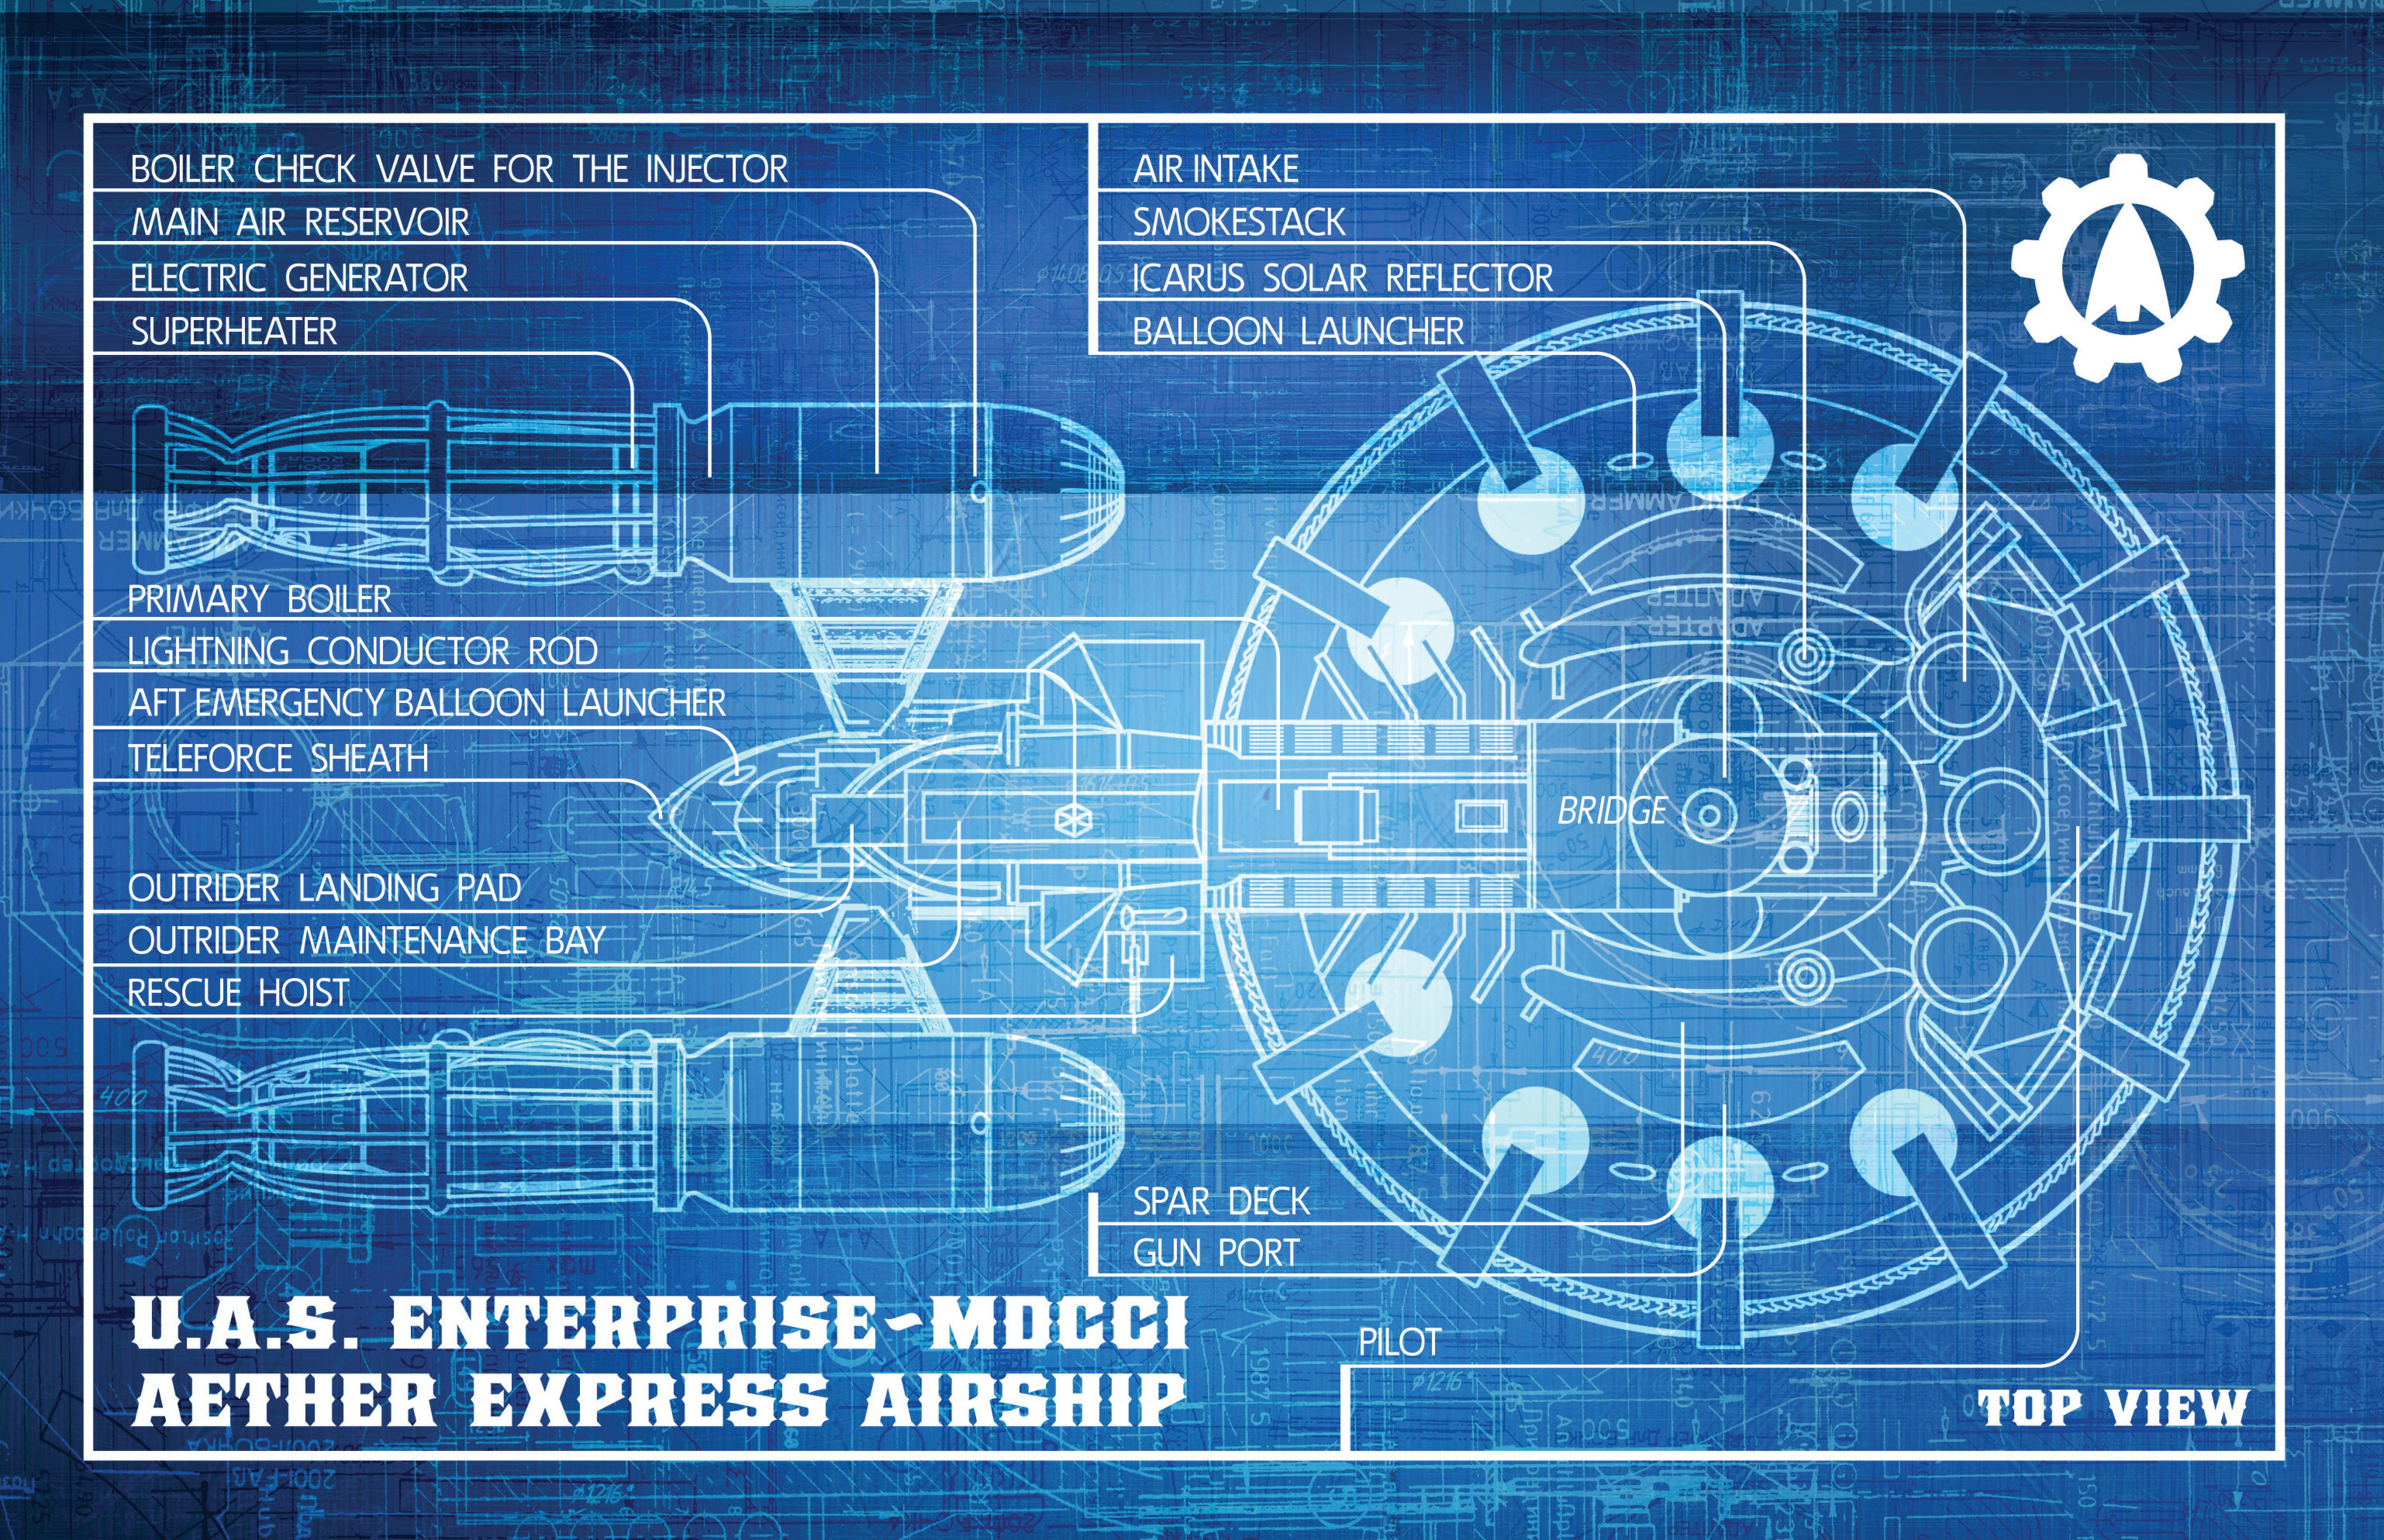 Read online Airship Enterprise: The Infernal Machine comic -  Issue #3 - 22